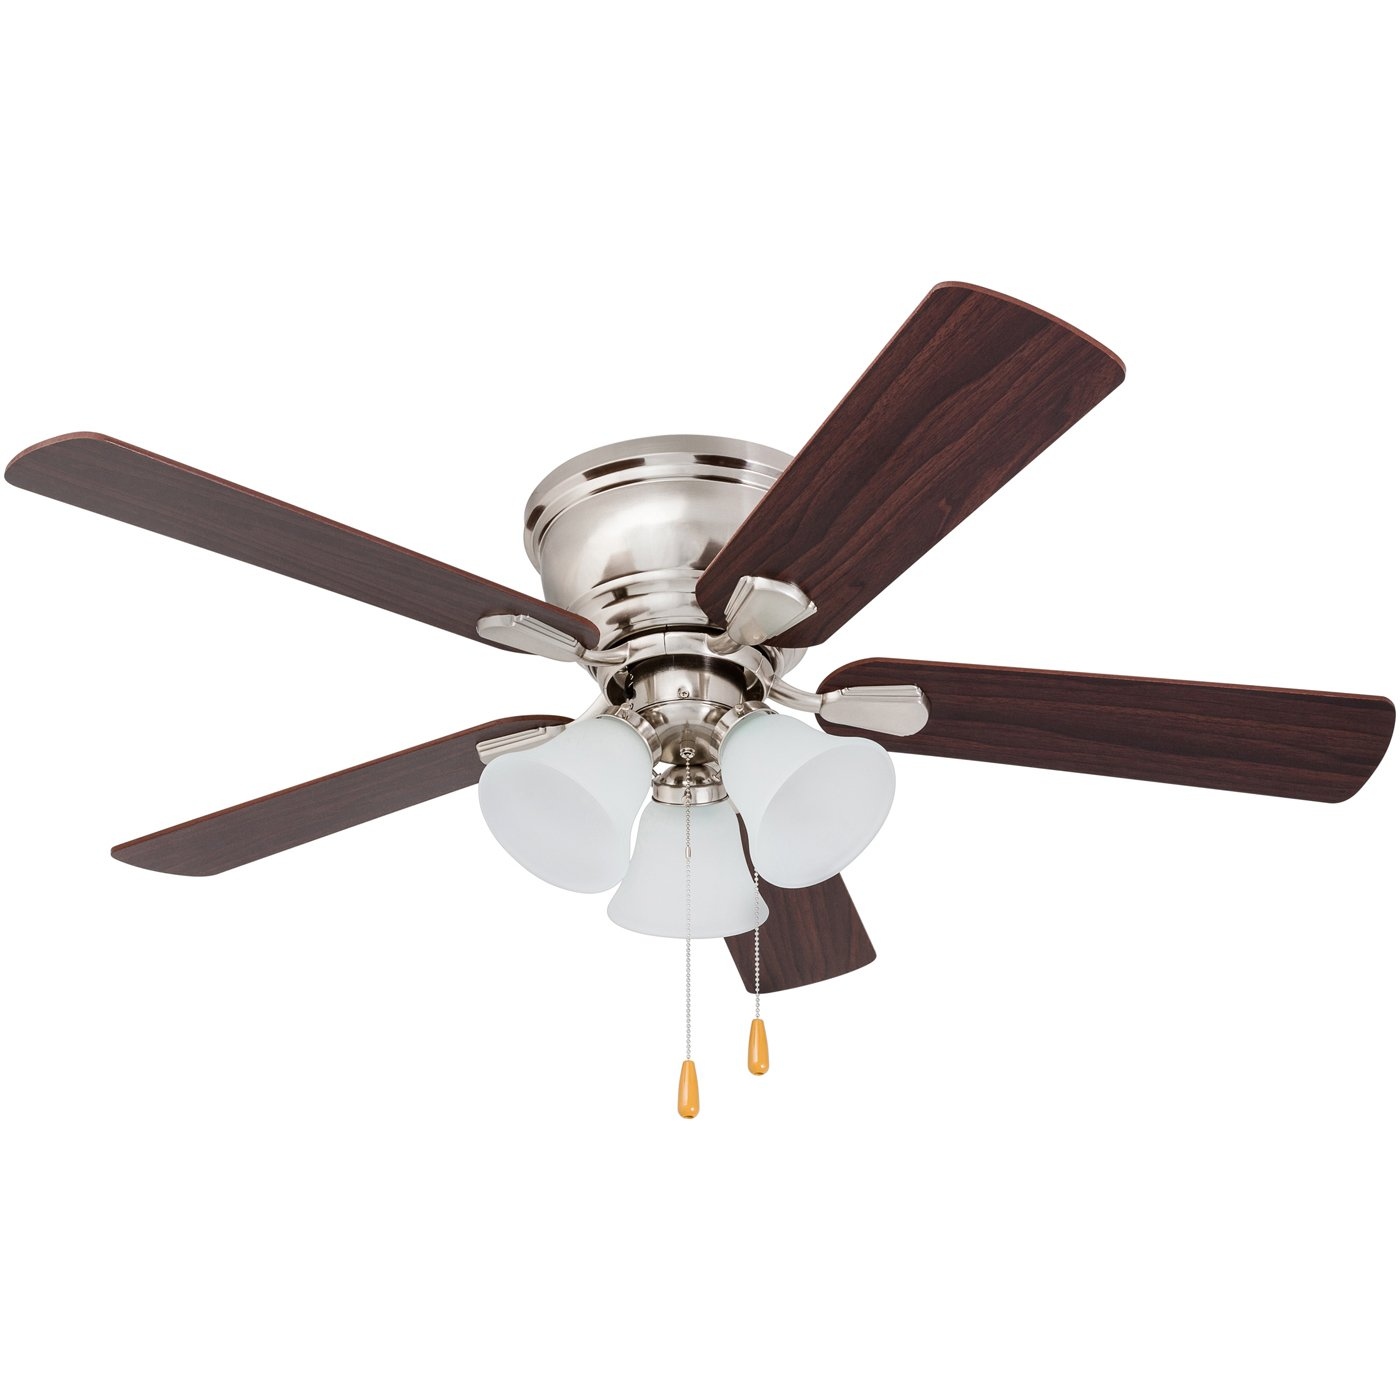 Prominence Home 80032-01 Saddle Ridge Low-Profile Hugger Ceiling Fan, LED 3-Light, Chocolate Maple/Walnut Blades, 46 inches, Brushed Nickel by Prominence Home